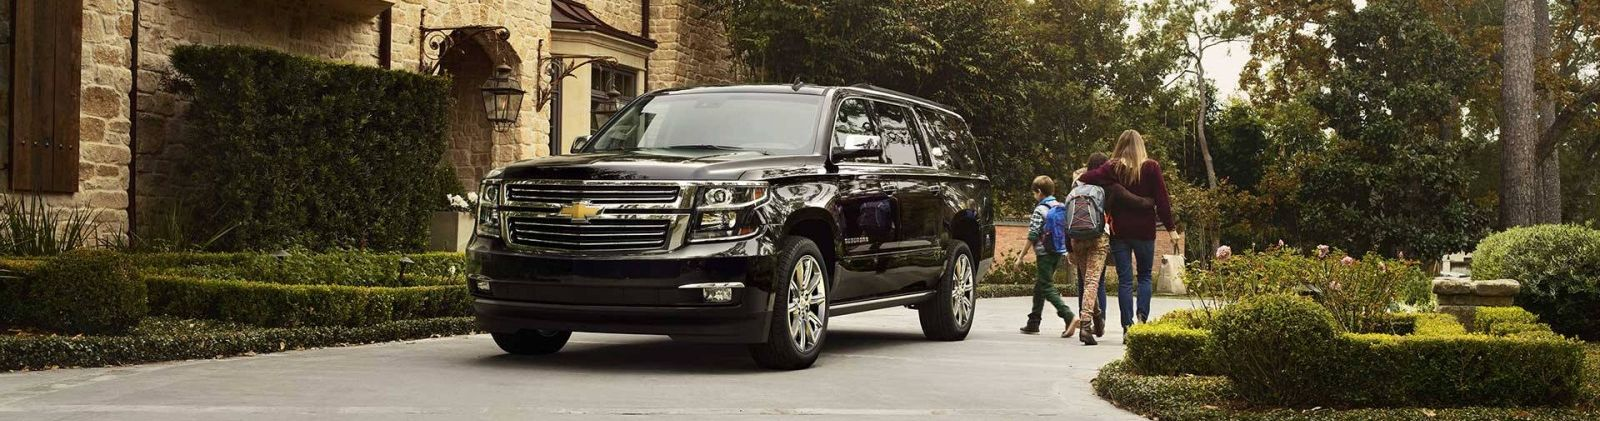 2017 Chevrolet Suburban for Sale near Fairfax, VA